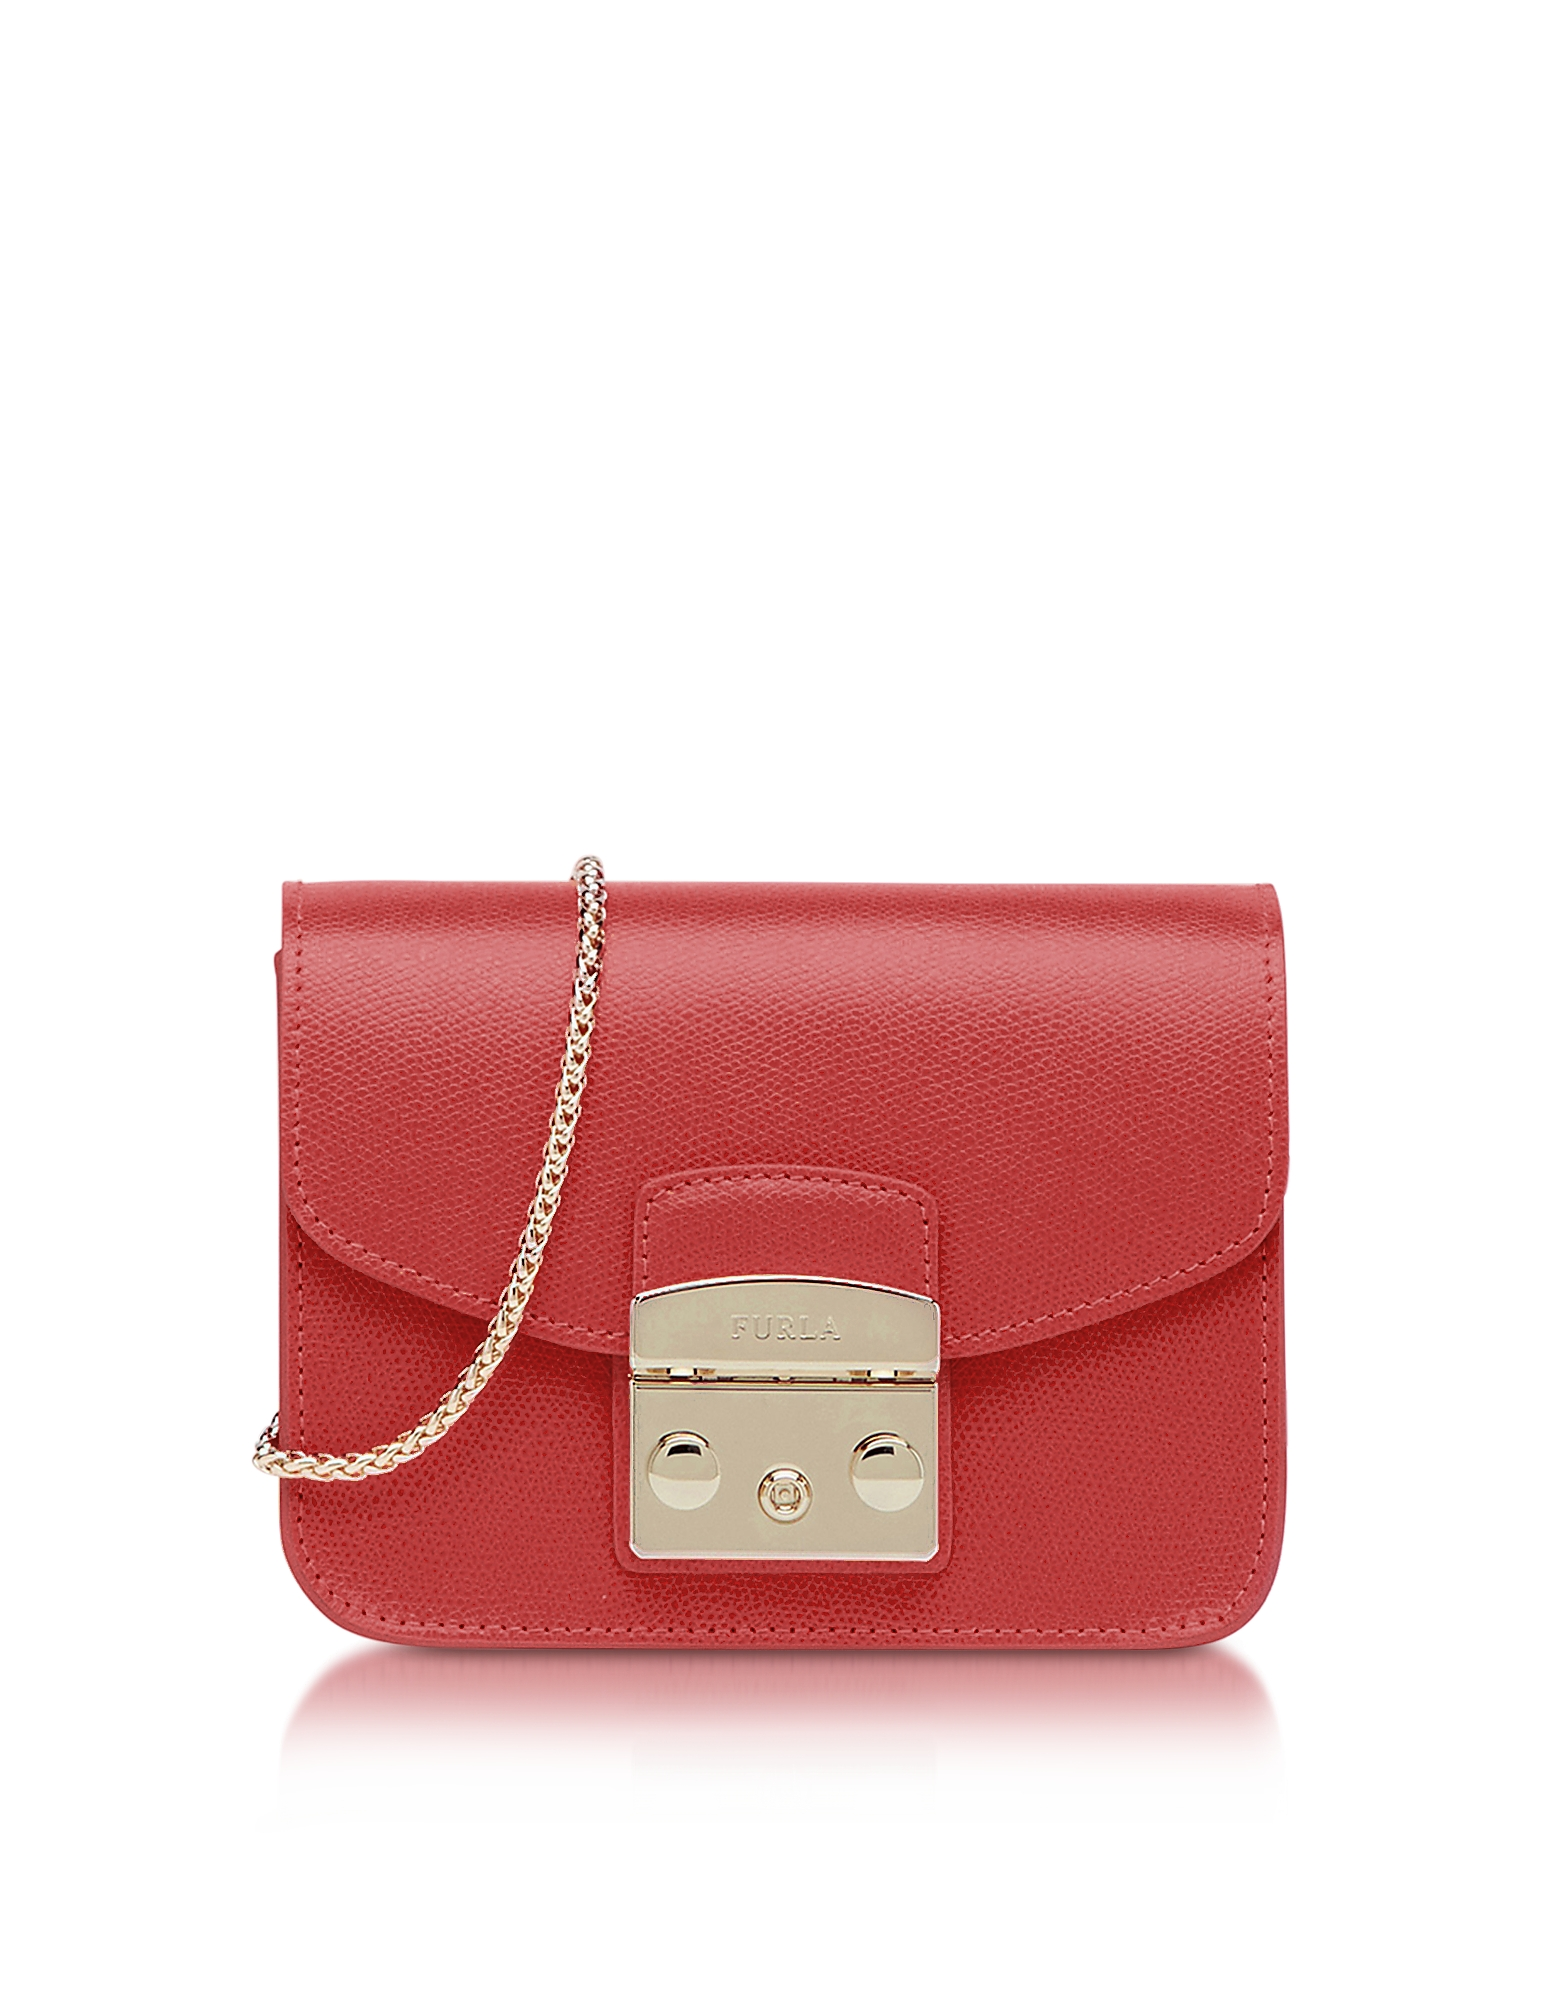 Ruby Leather Metropolis Mini Crossbody Bag